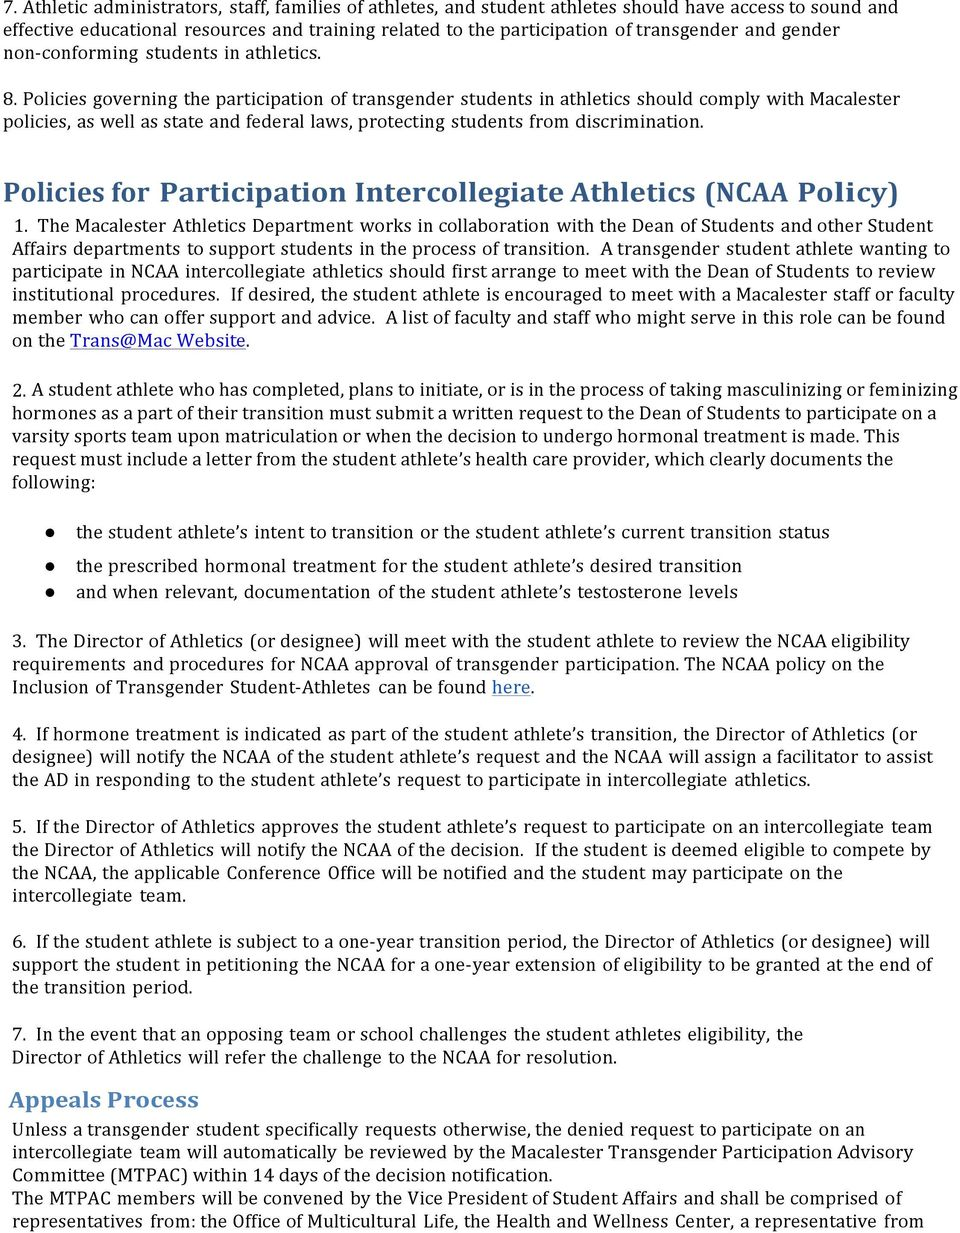 Policies governing the participation of transgender students in athletics should comply with Macalester policies, as well as state and federal laws, protecting students from discrimination.